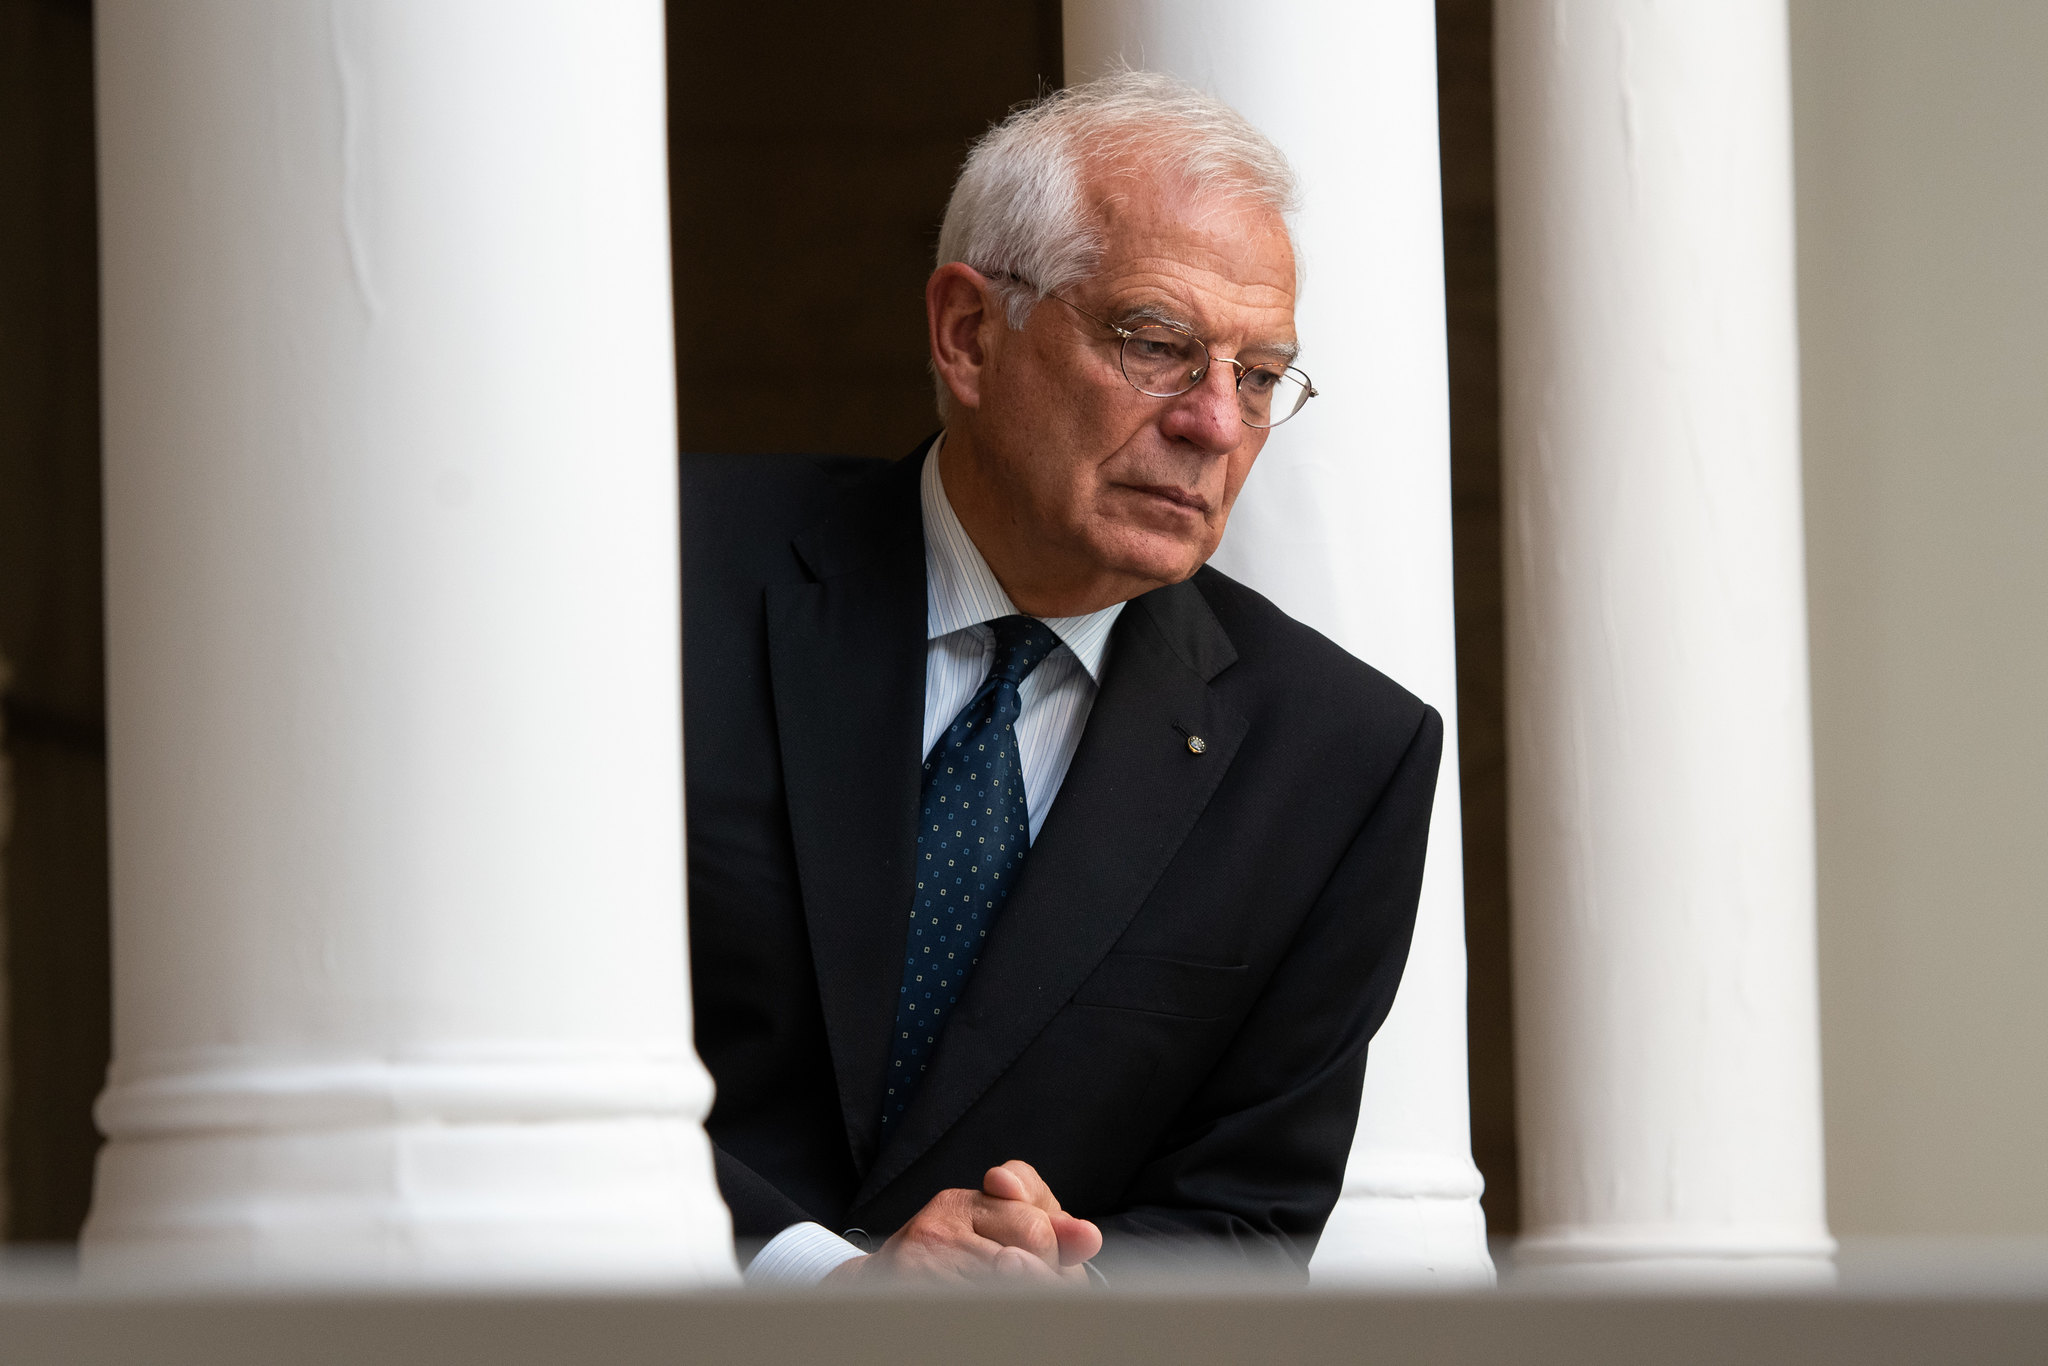 The EU said it had shown its willingness to engage with Russia by sending Borrell to Moscow